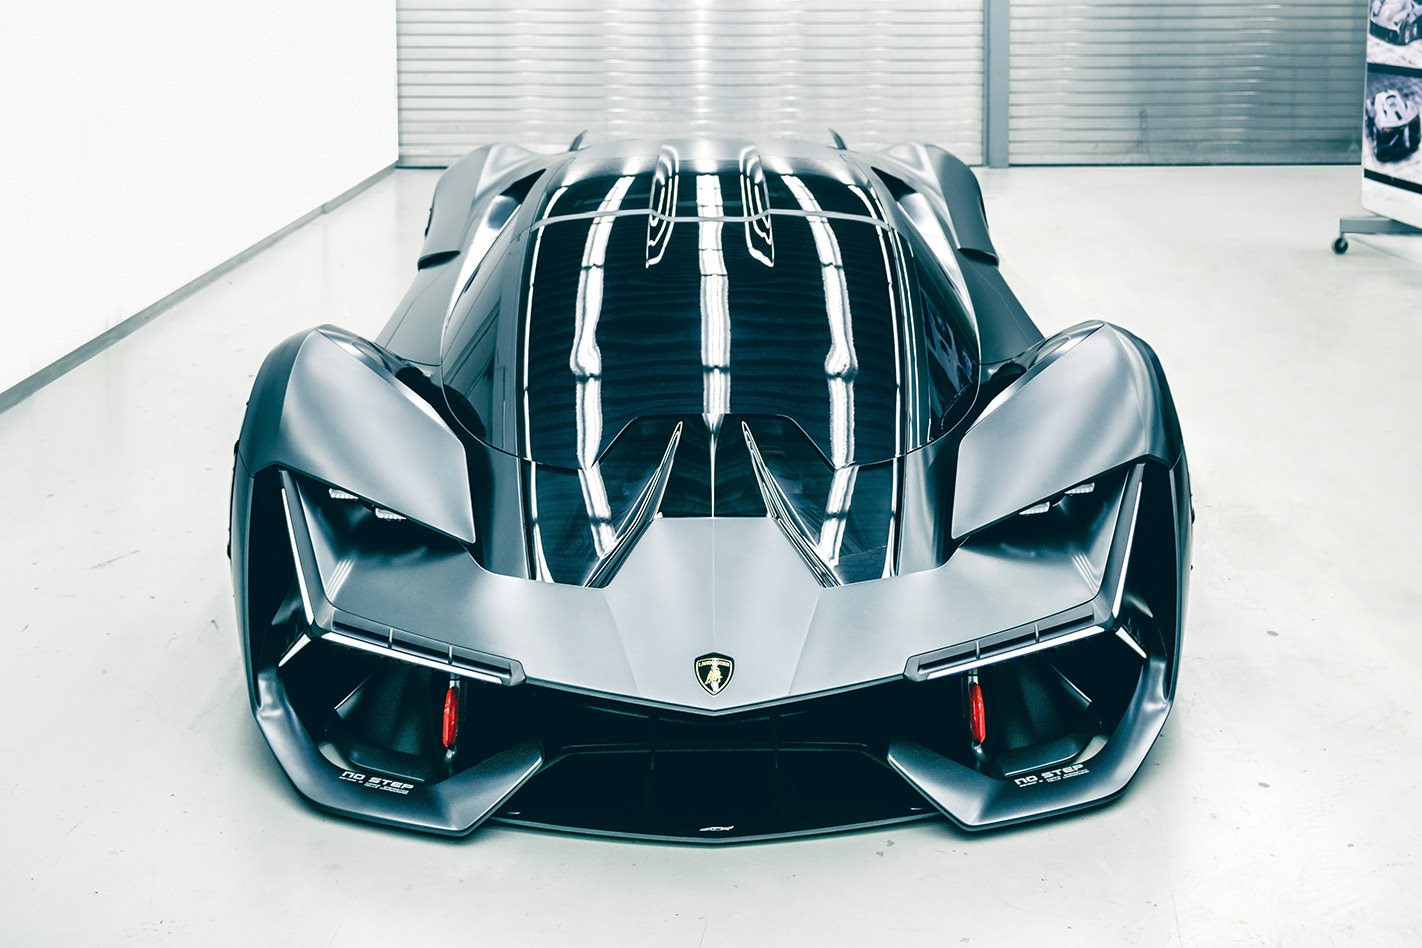 Lamborghini unveils the self-healing supercar of the future